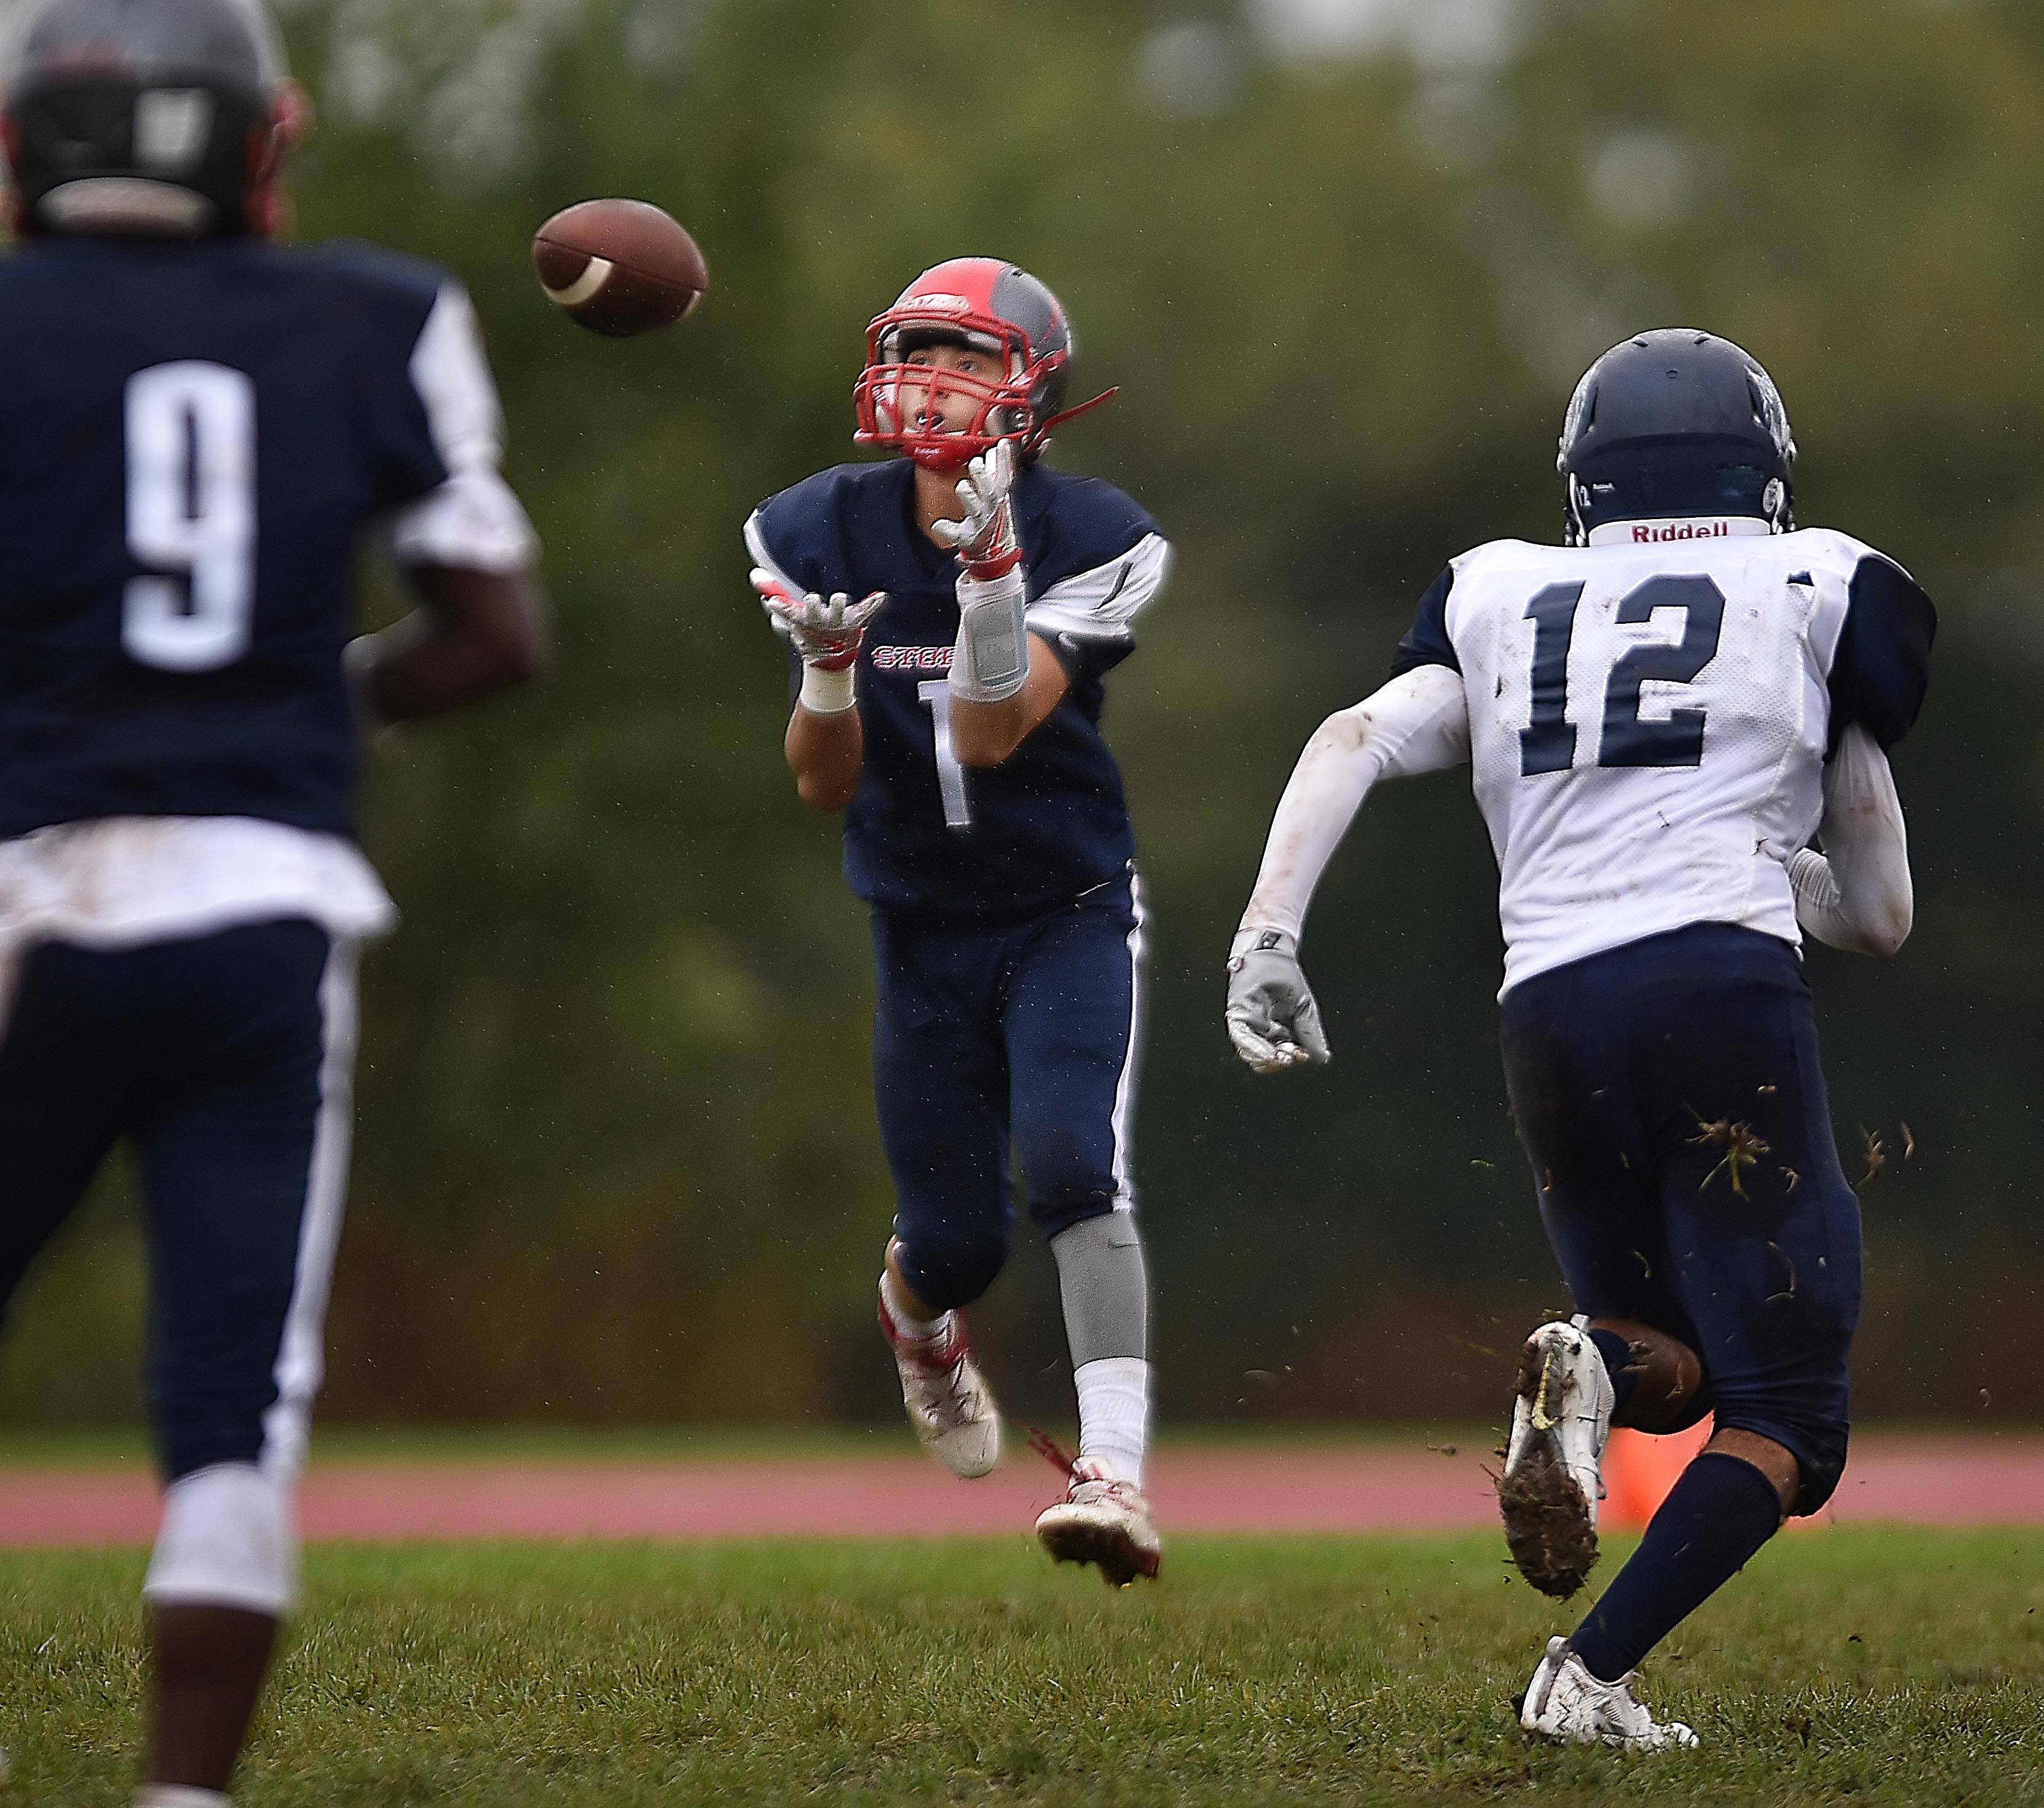 South Elgin's Azxavier Salinas catches a long touchdown pass in the second quarter against West Chicago Saturday in South Elgin.